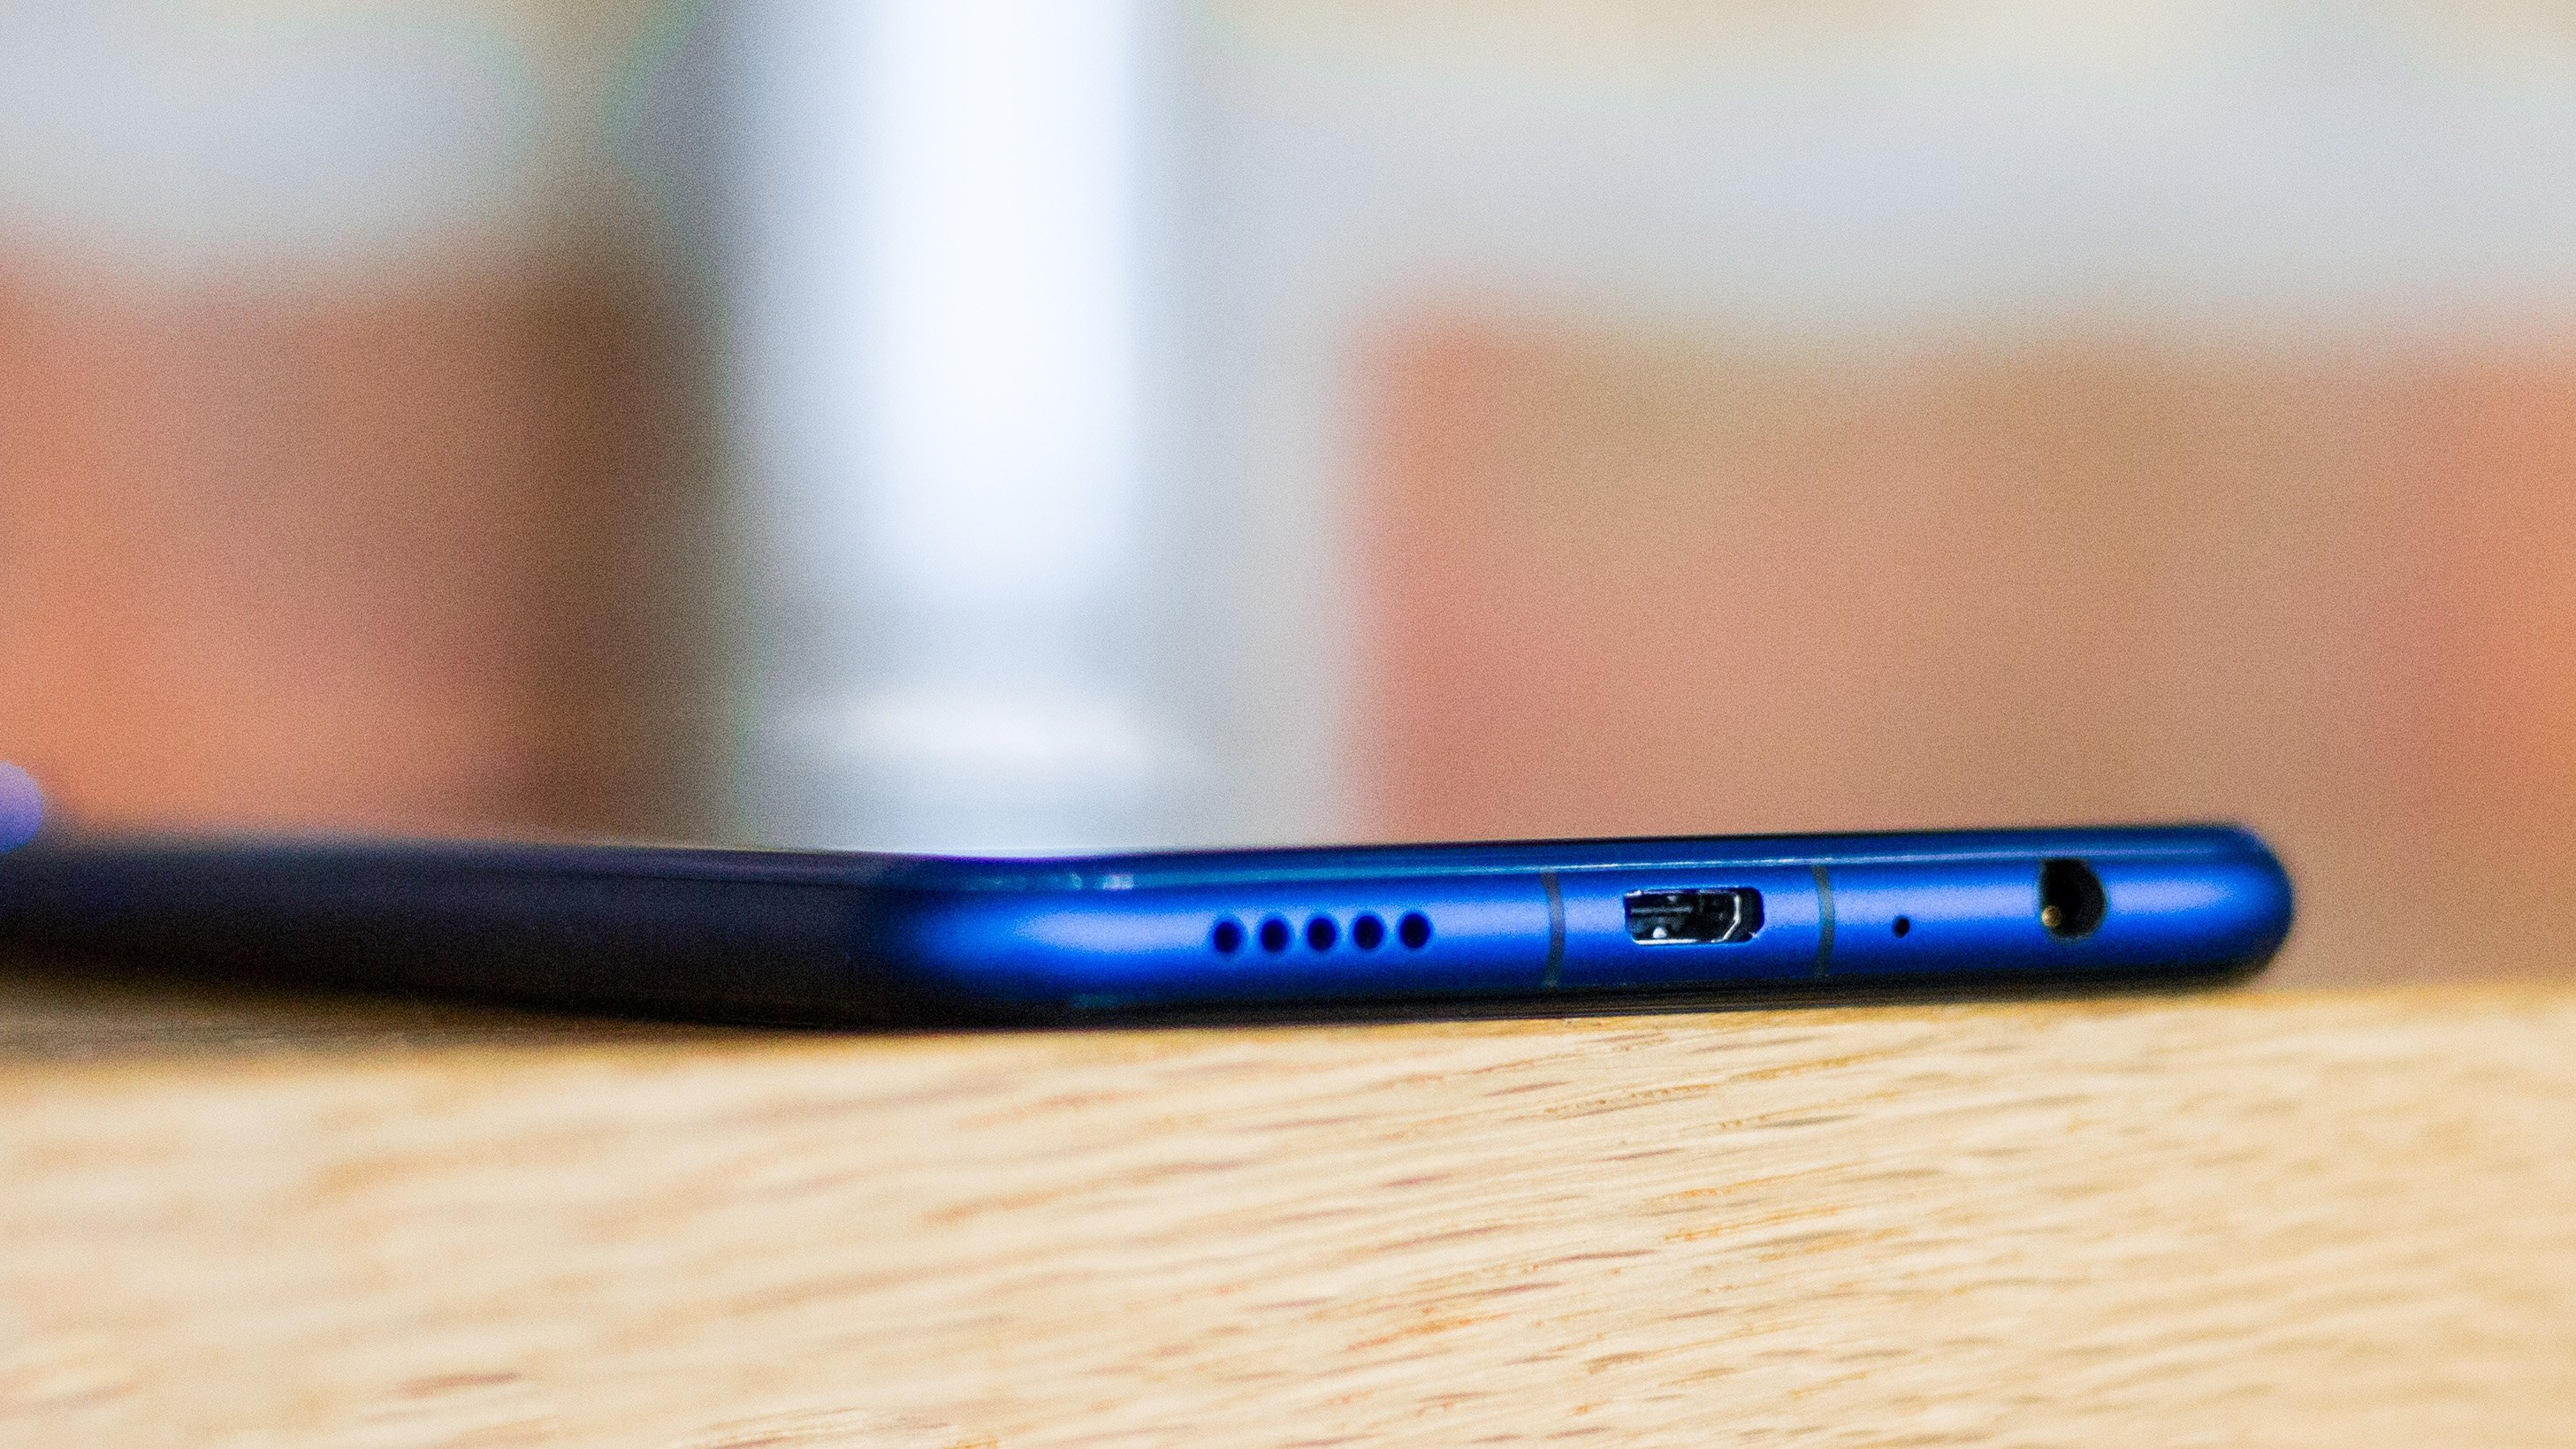 Honor 8X review: The fastest phone under £250 | Expert Reviews